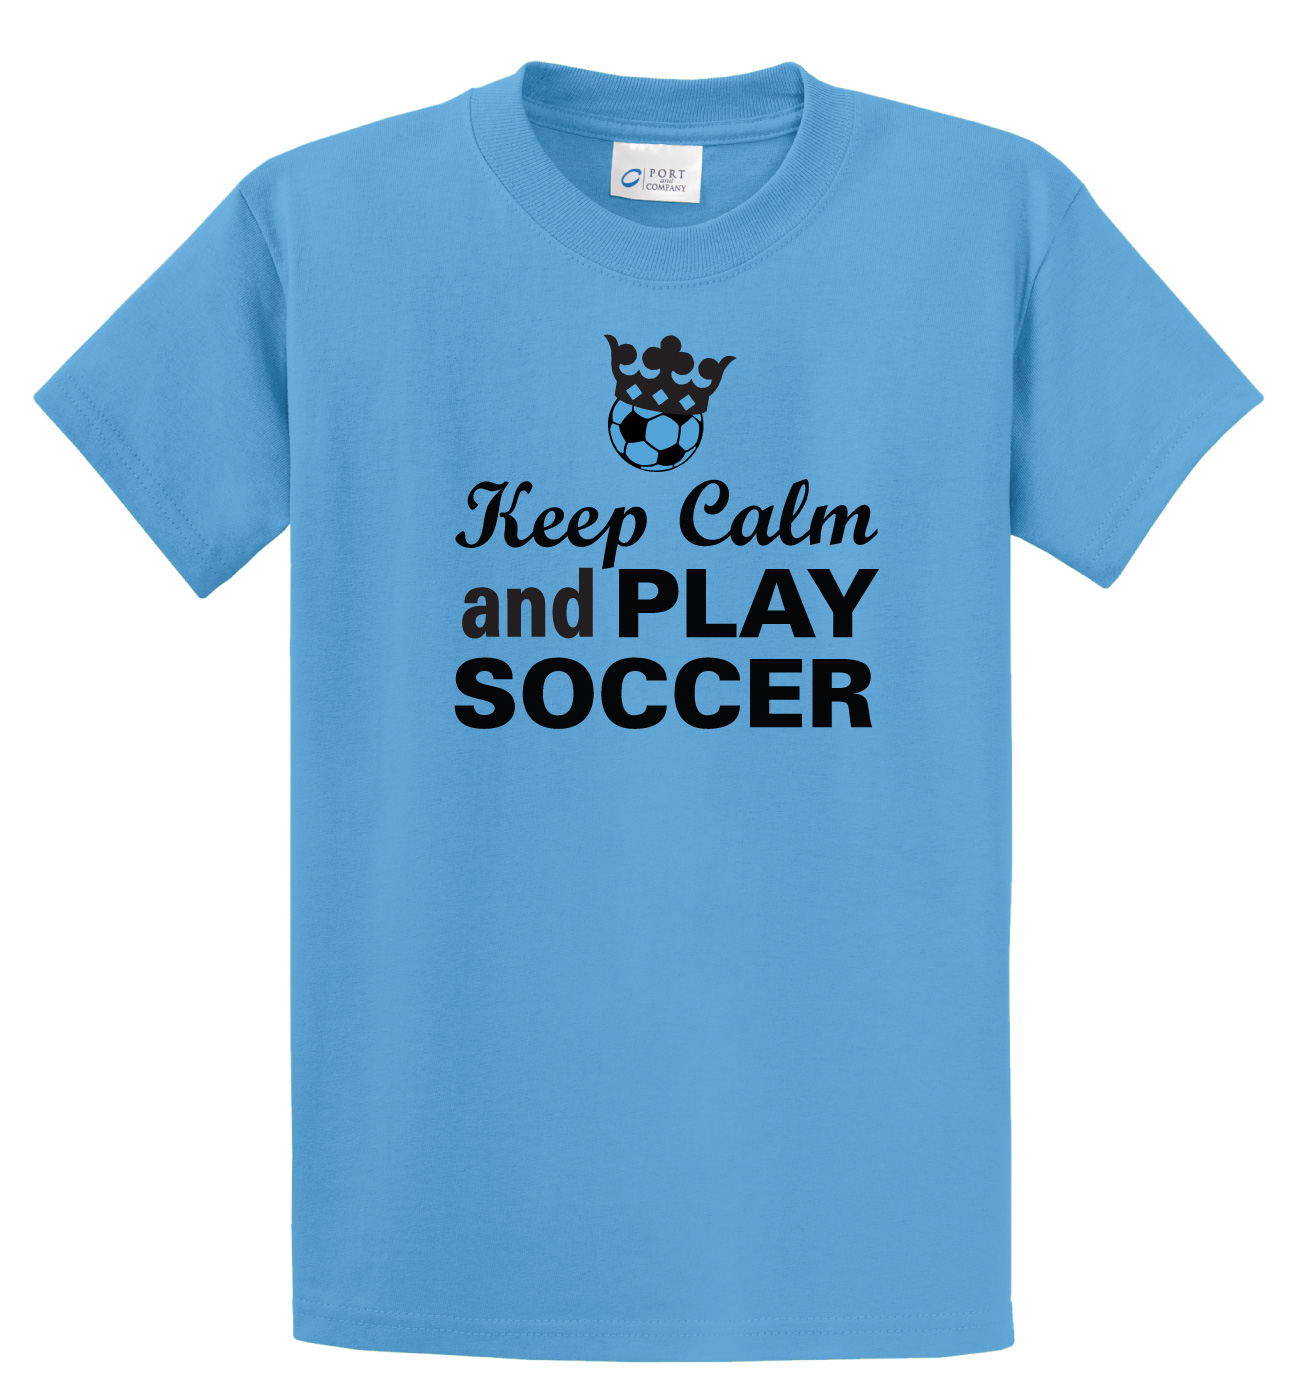 Keep Calm and Play soccer tee in aqua